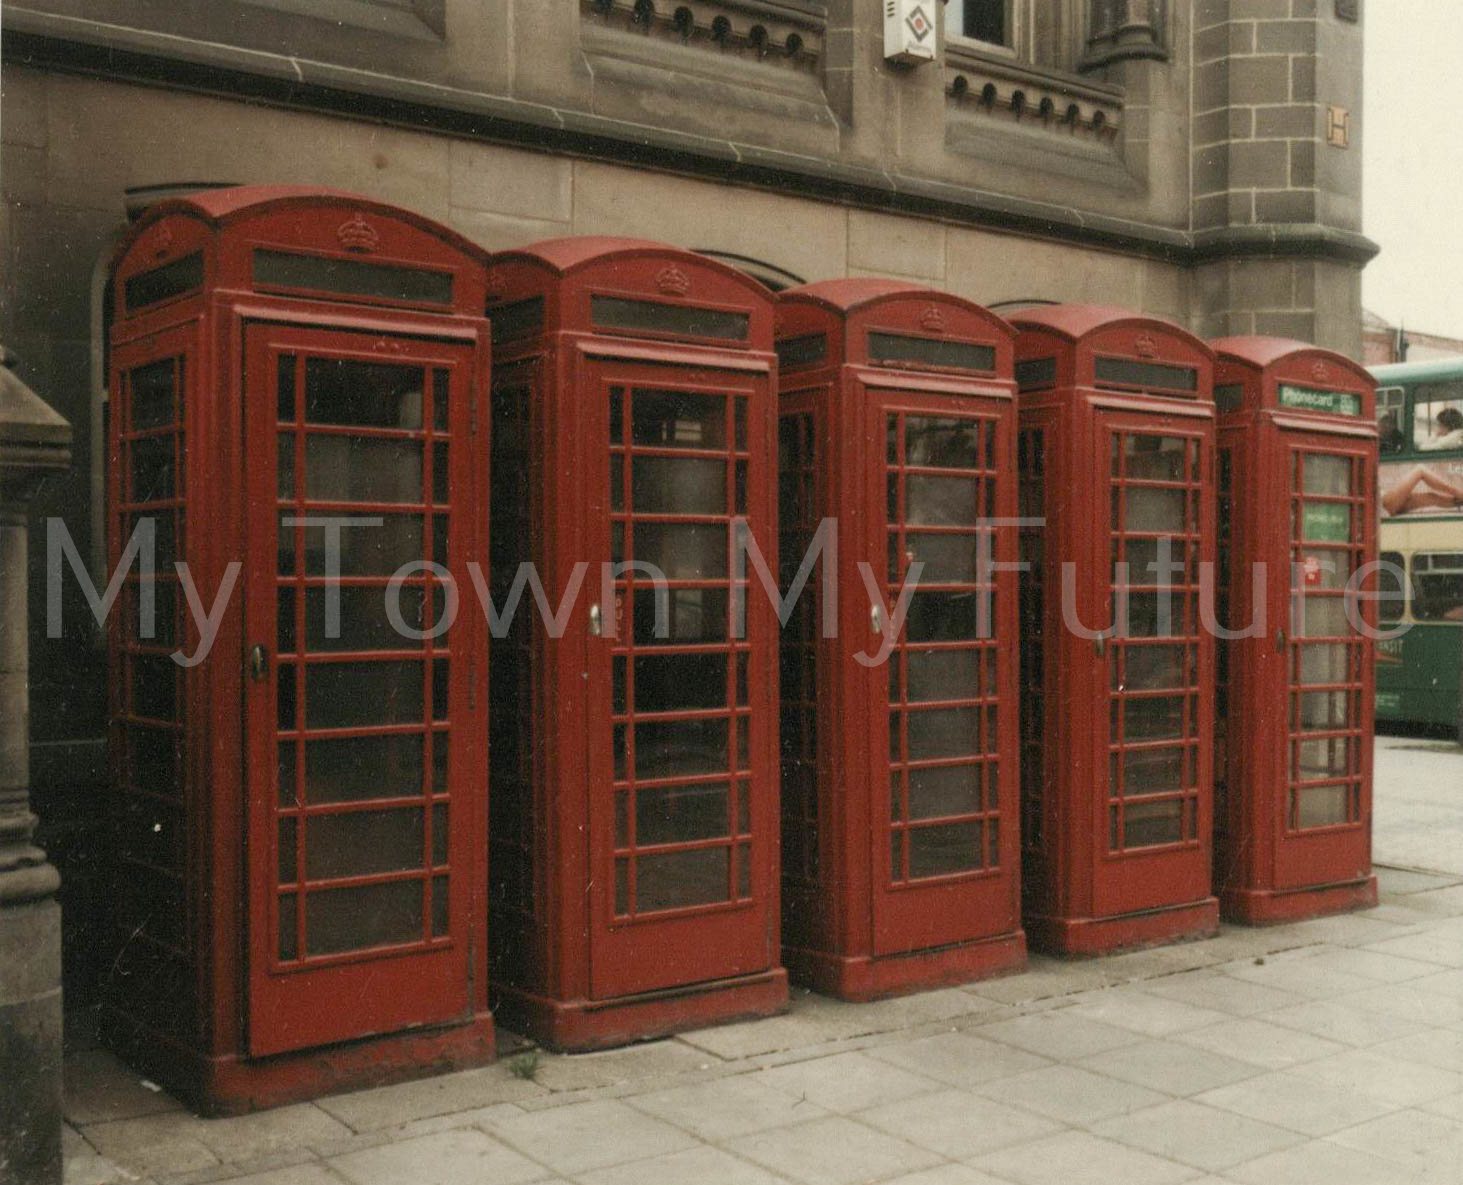 Town Hall,Telephone Boxes